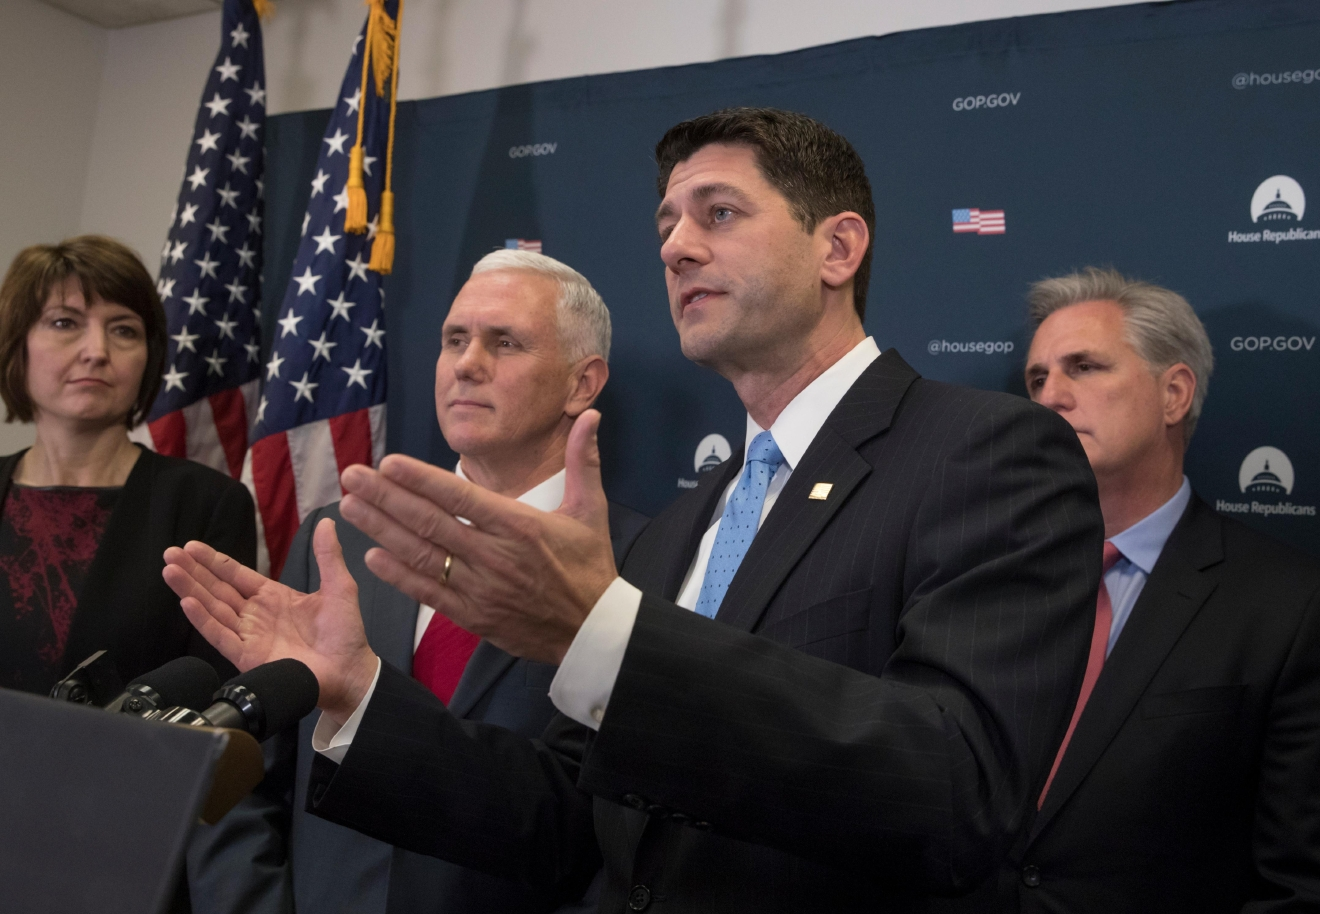 Vice President-elect Mike Pence joins House Speaker Paul Ryan of Wis., and other House Republican leaders at a news conference on Capitol Hill in Washington, Wednesday, Jan. 4, 2017. (AP Photo/J. Scott Applewhite)